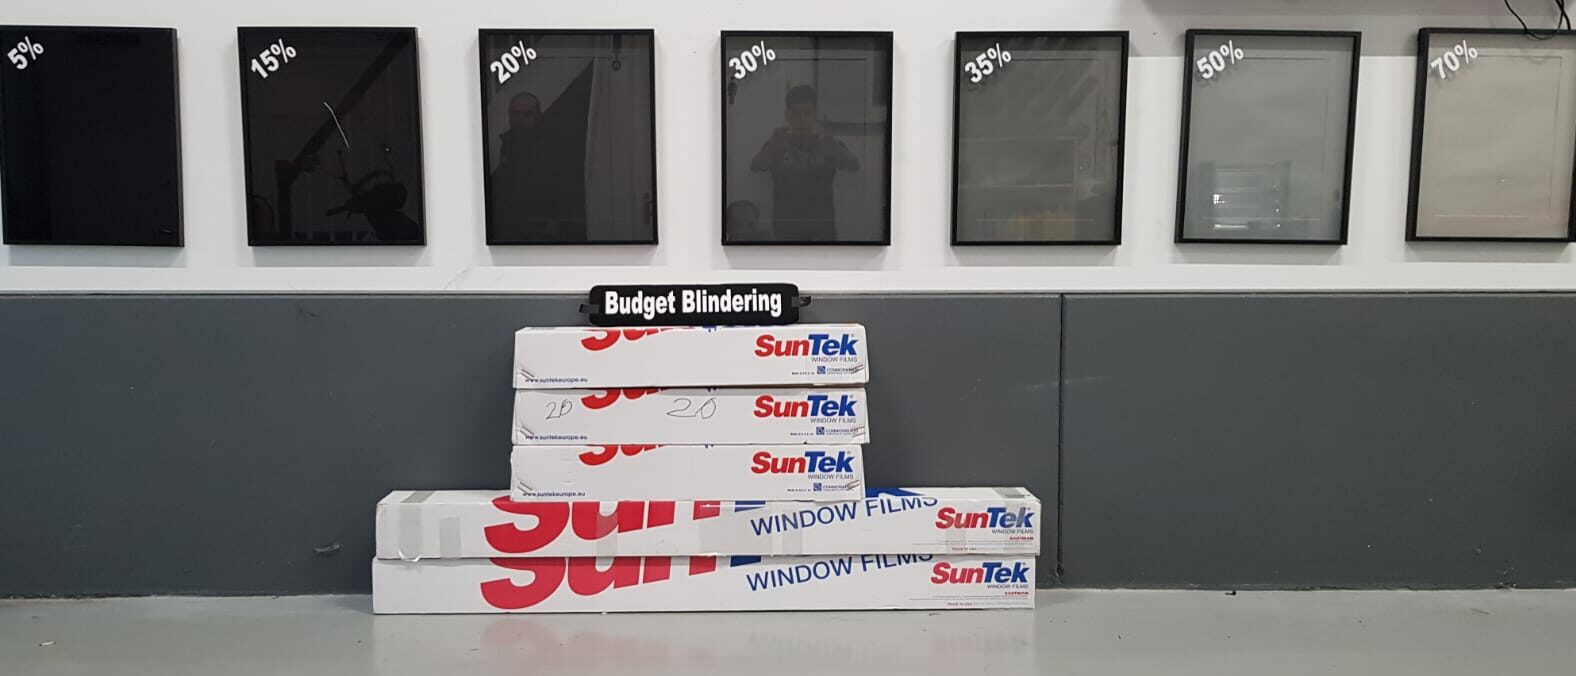 Suntek windowfilm